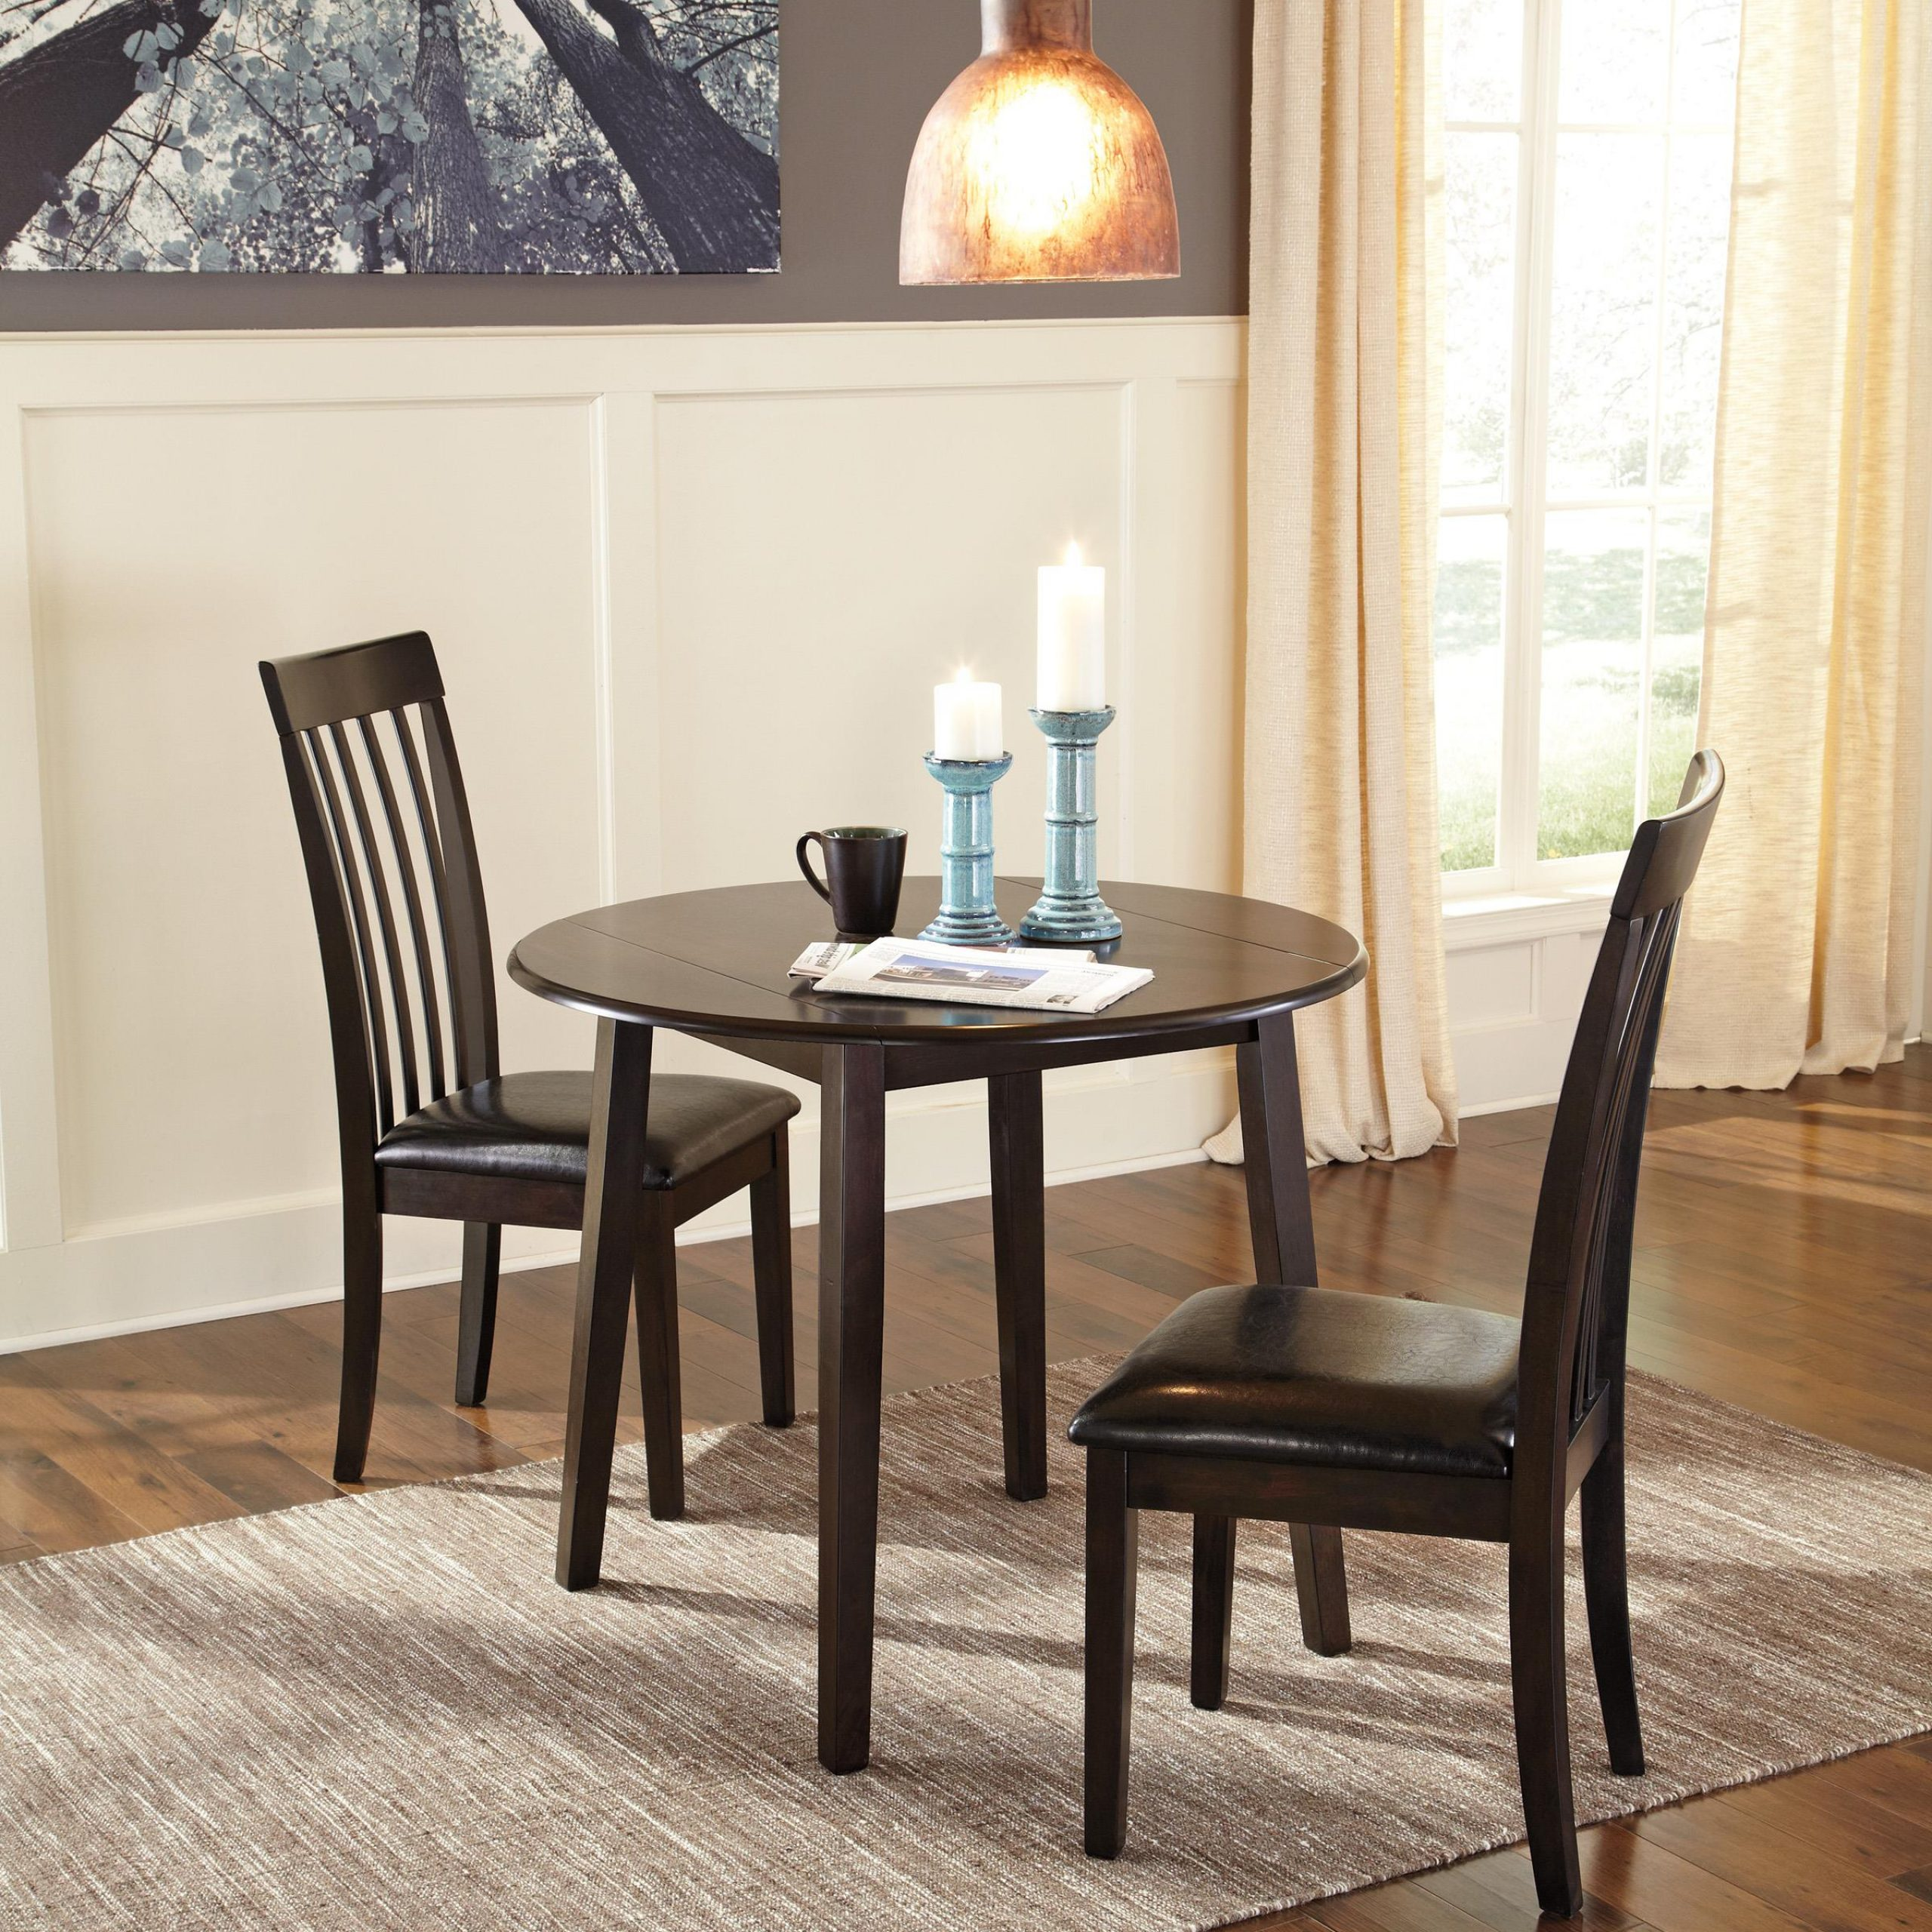 Most Recent Transitional 3 Piece Drop Leaf Casual Dining Tables Set Pertaining To Hammis (D310)Signature Designashley – Home (View 11 of 30)